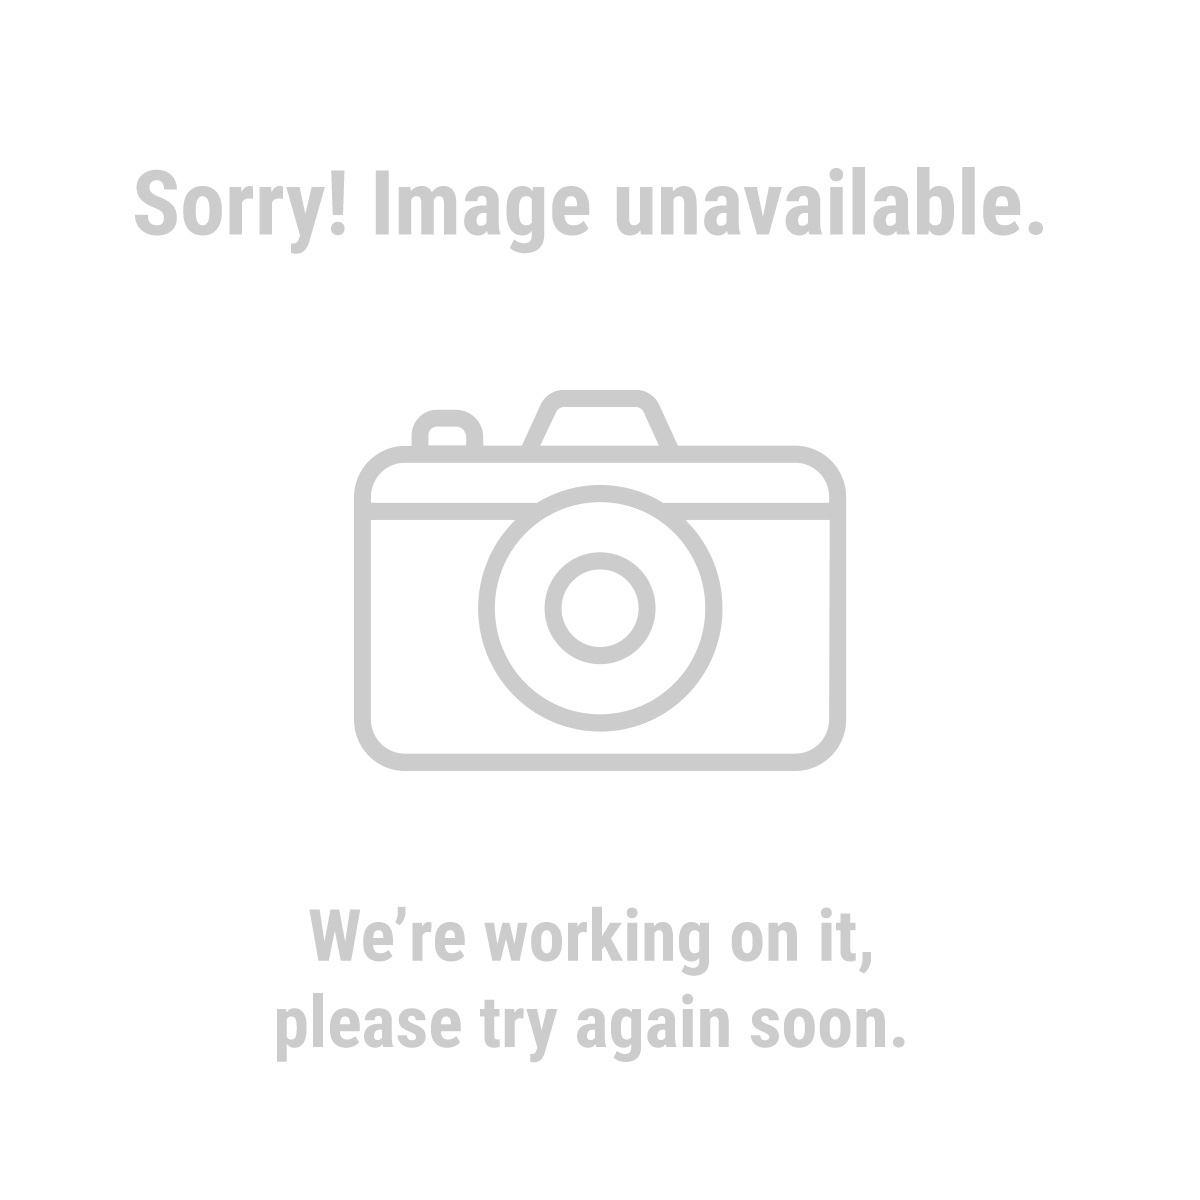 central pneumatic 43760 industrial air paint spray gun. Black Bedroom Furniture Sets. Home Design Ideas